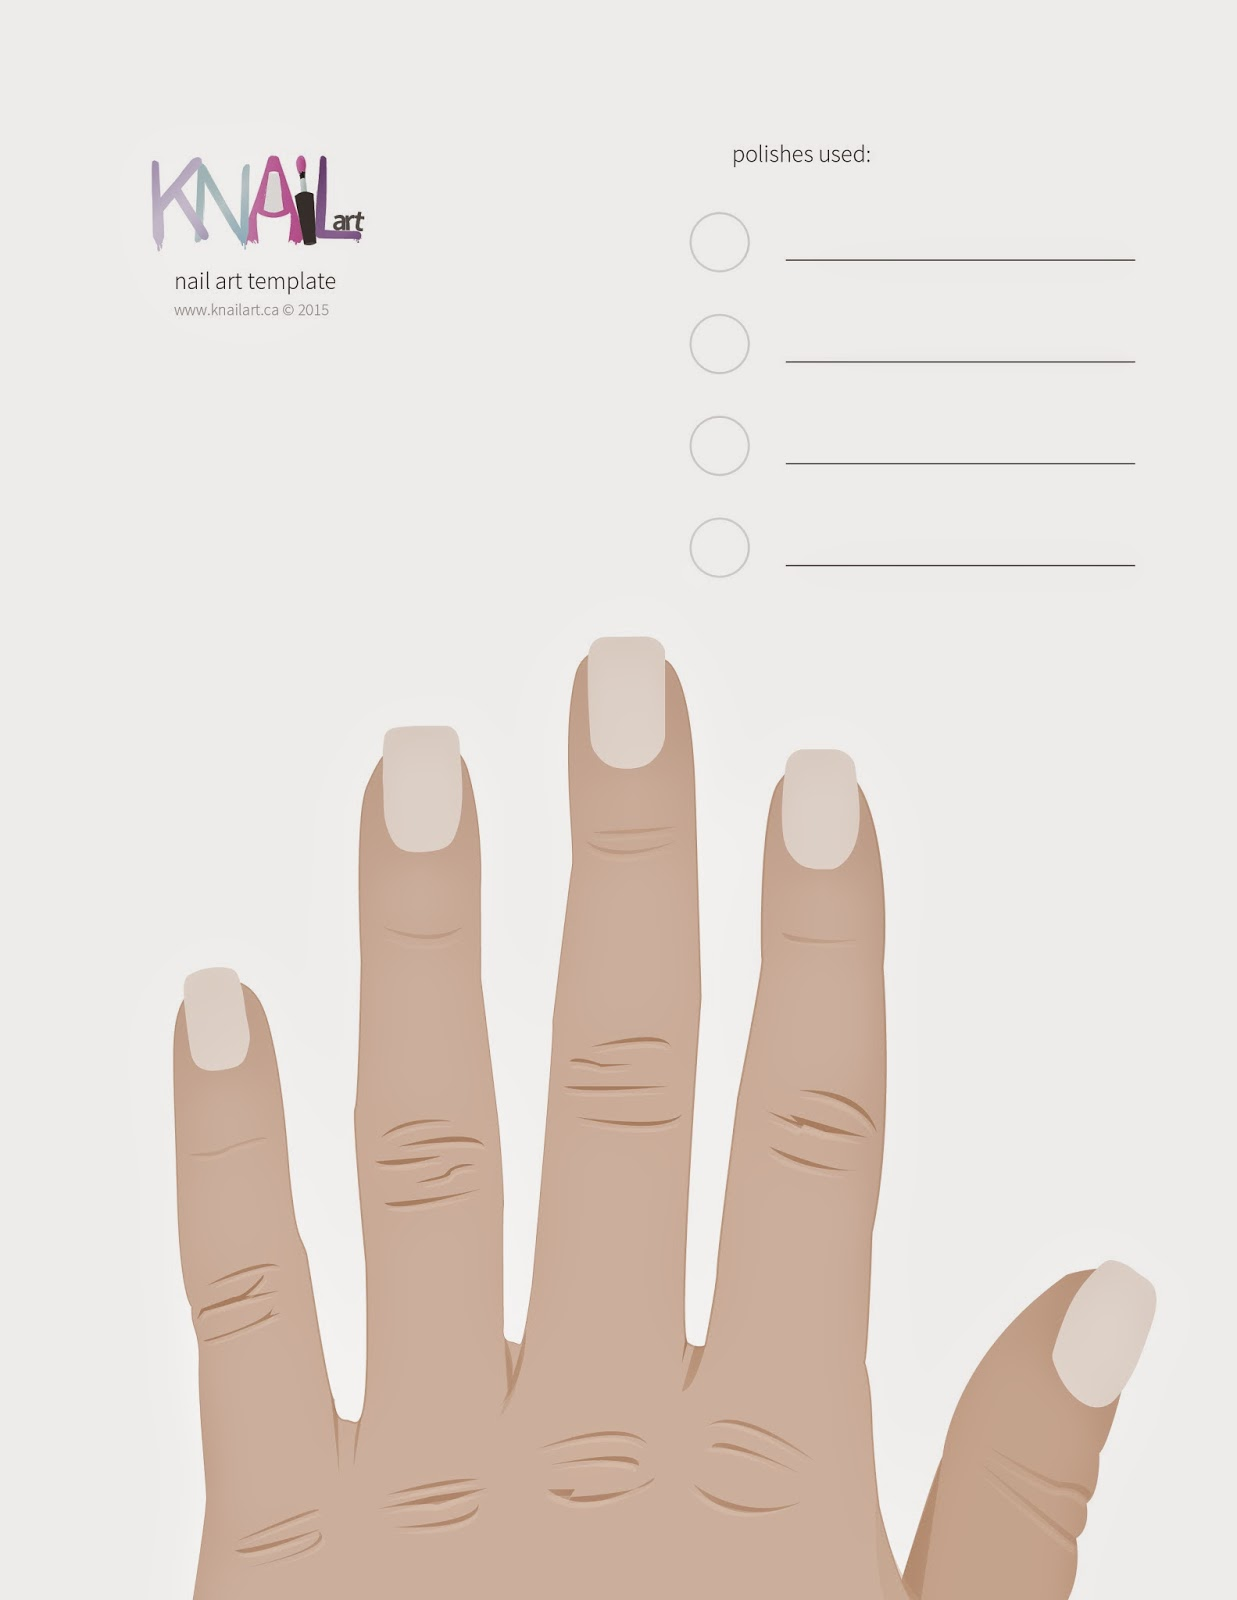 Nice 10 Tips To Making A Resume Small 11x17 Poster Template Round 1st Birthday Invitation Templates 2 Inch Button Template Youthful 2 Month Calendar Template White2014 Blogger Template Made This Nail Art Template So I Could Be A Better Planner In 2015 ..